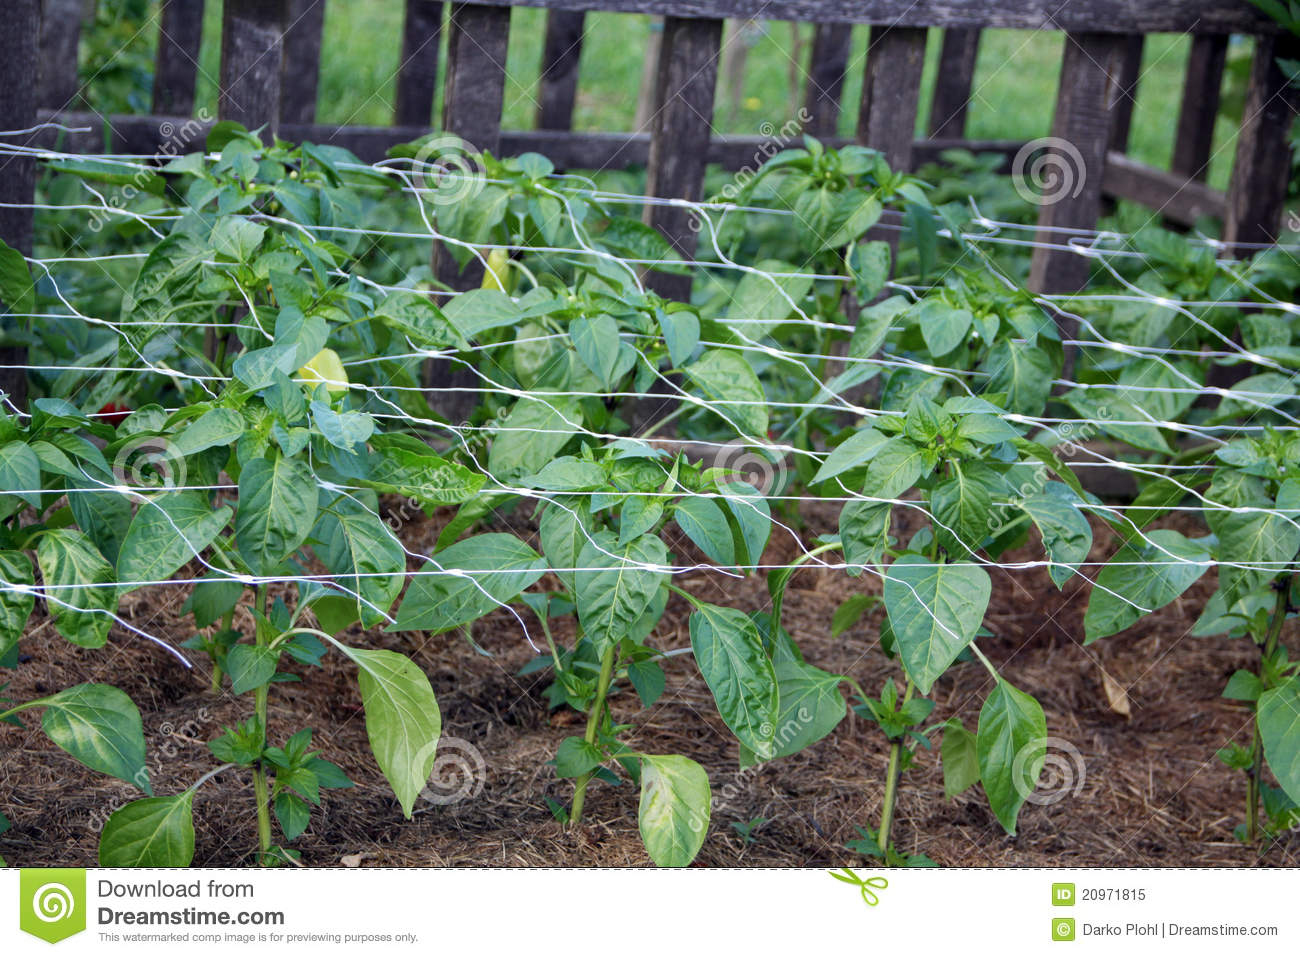 Pepper plants after planting on the garden bed royalty free stock photo image 20971815 - Planting pepper garden ...